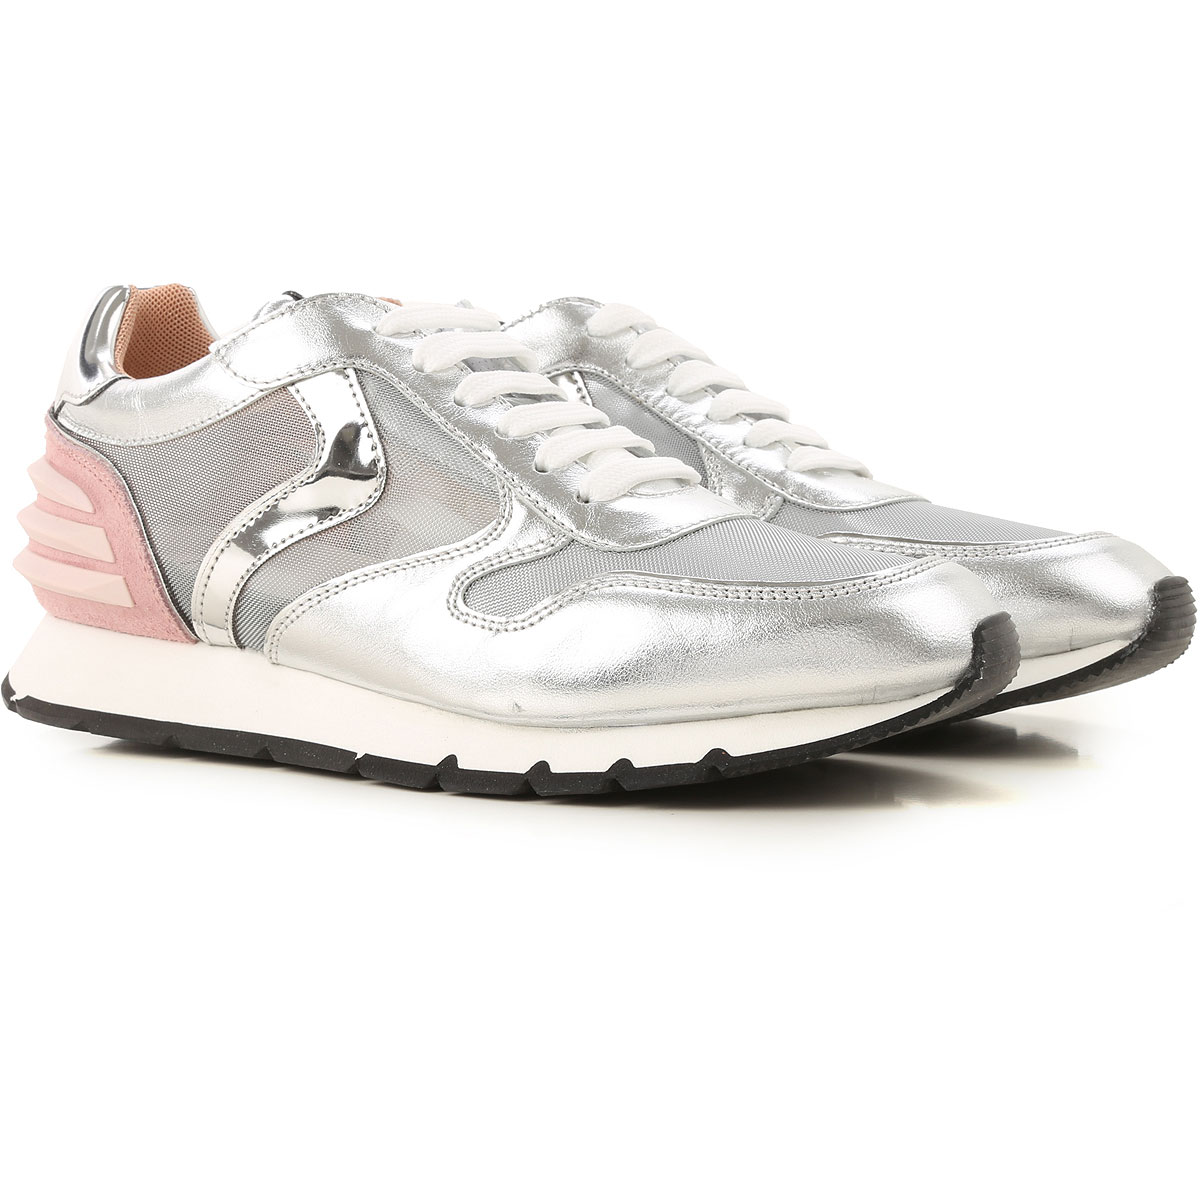 Voile Blanche Sneakers for Women On Sale, Silver, Leather, 2019, 7 9